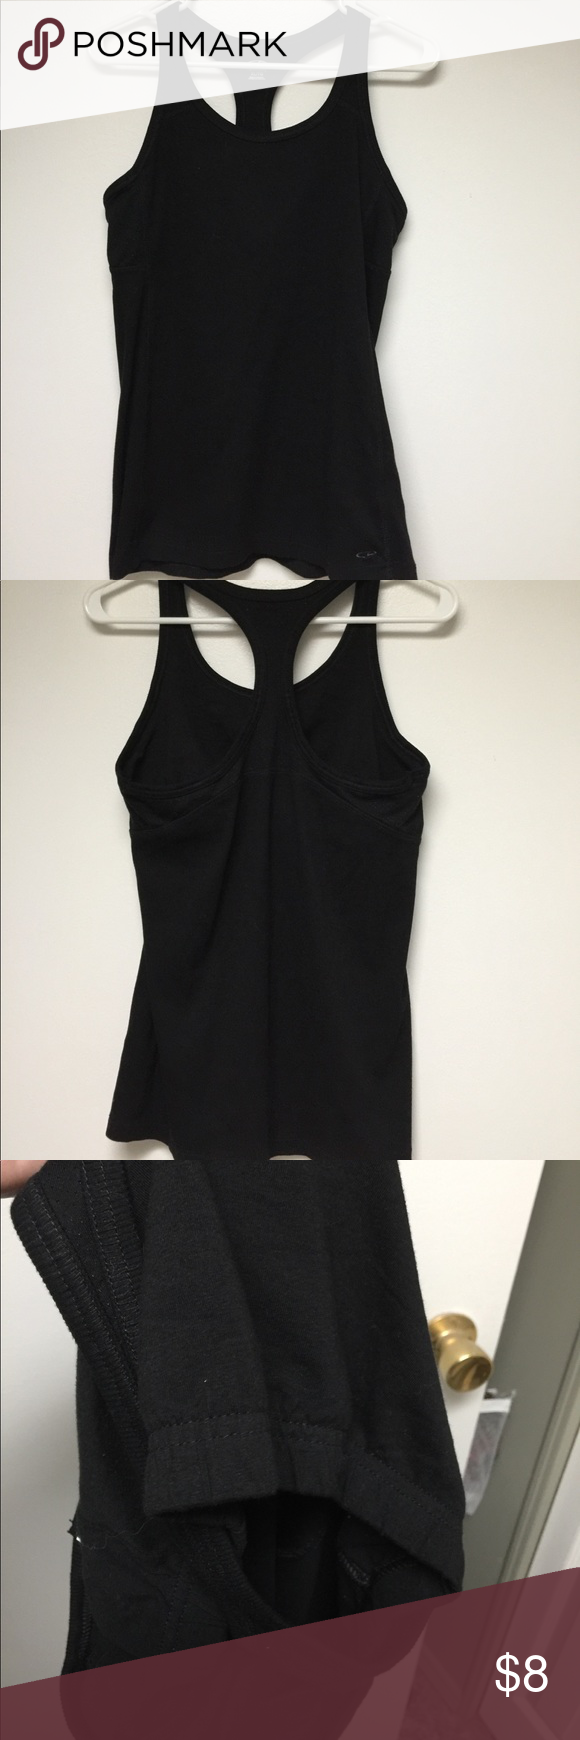 Champion tank top Black tank top has built in shelf bra. Never worn or laundered. Size XL Champion Tops Tank Tops